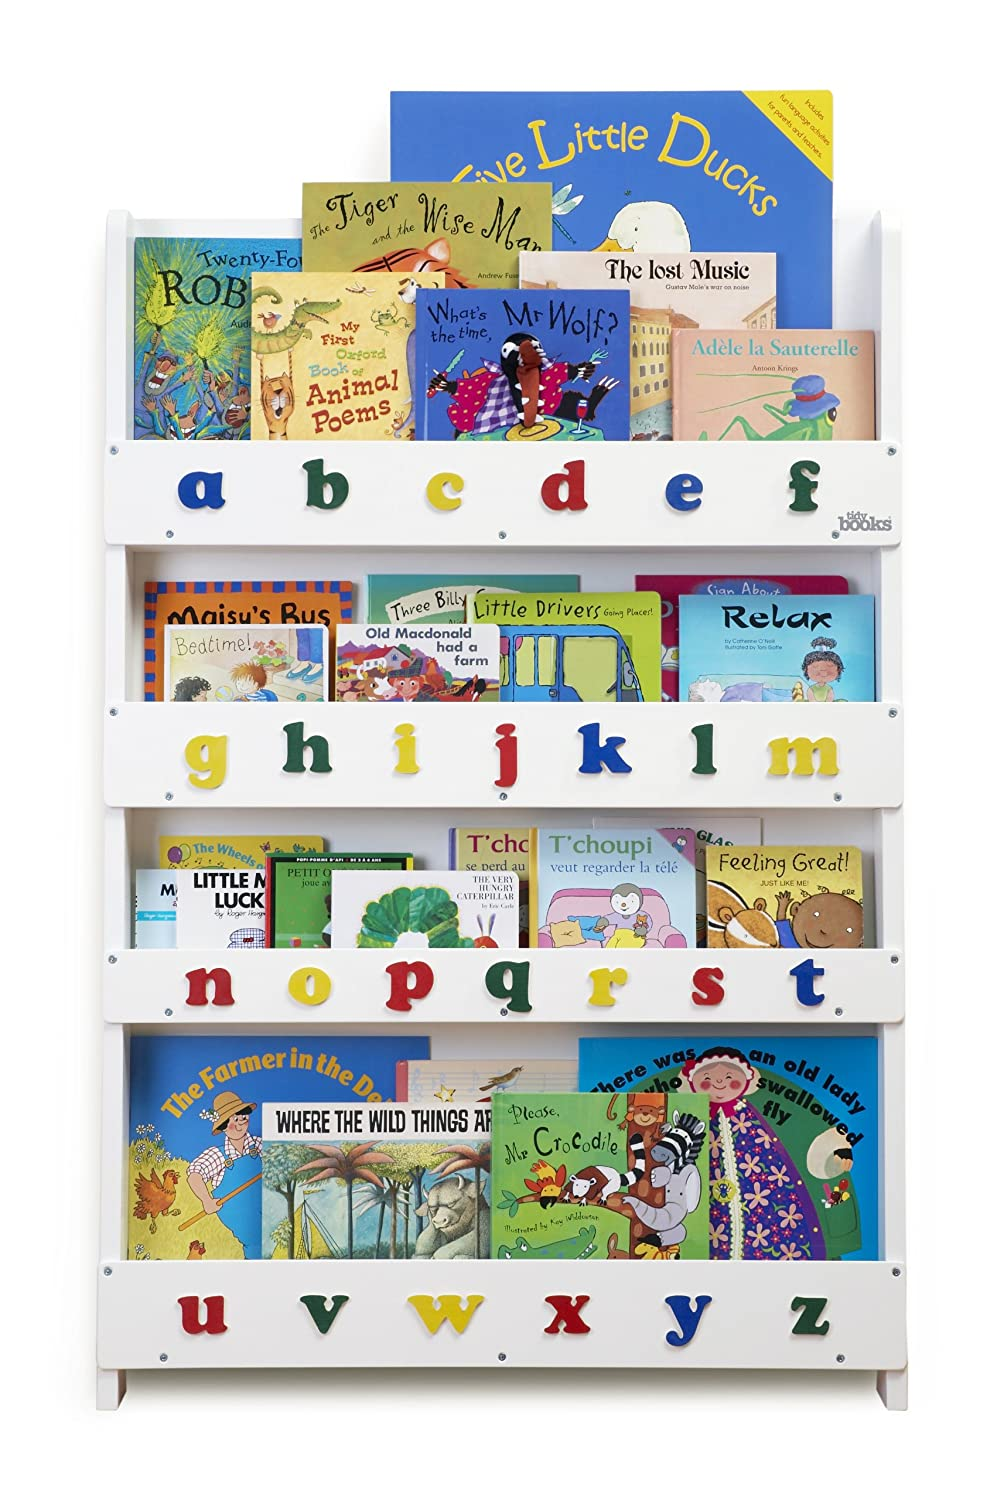 tidy books  the children's bookcase company  the original  - tidy books  the children's bookcase company  the original childrensbookcase and book display with d alphabet in white lowercaseamazoncouk baby